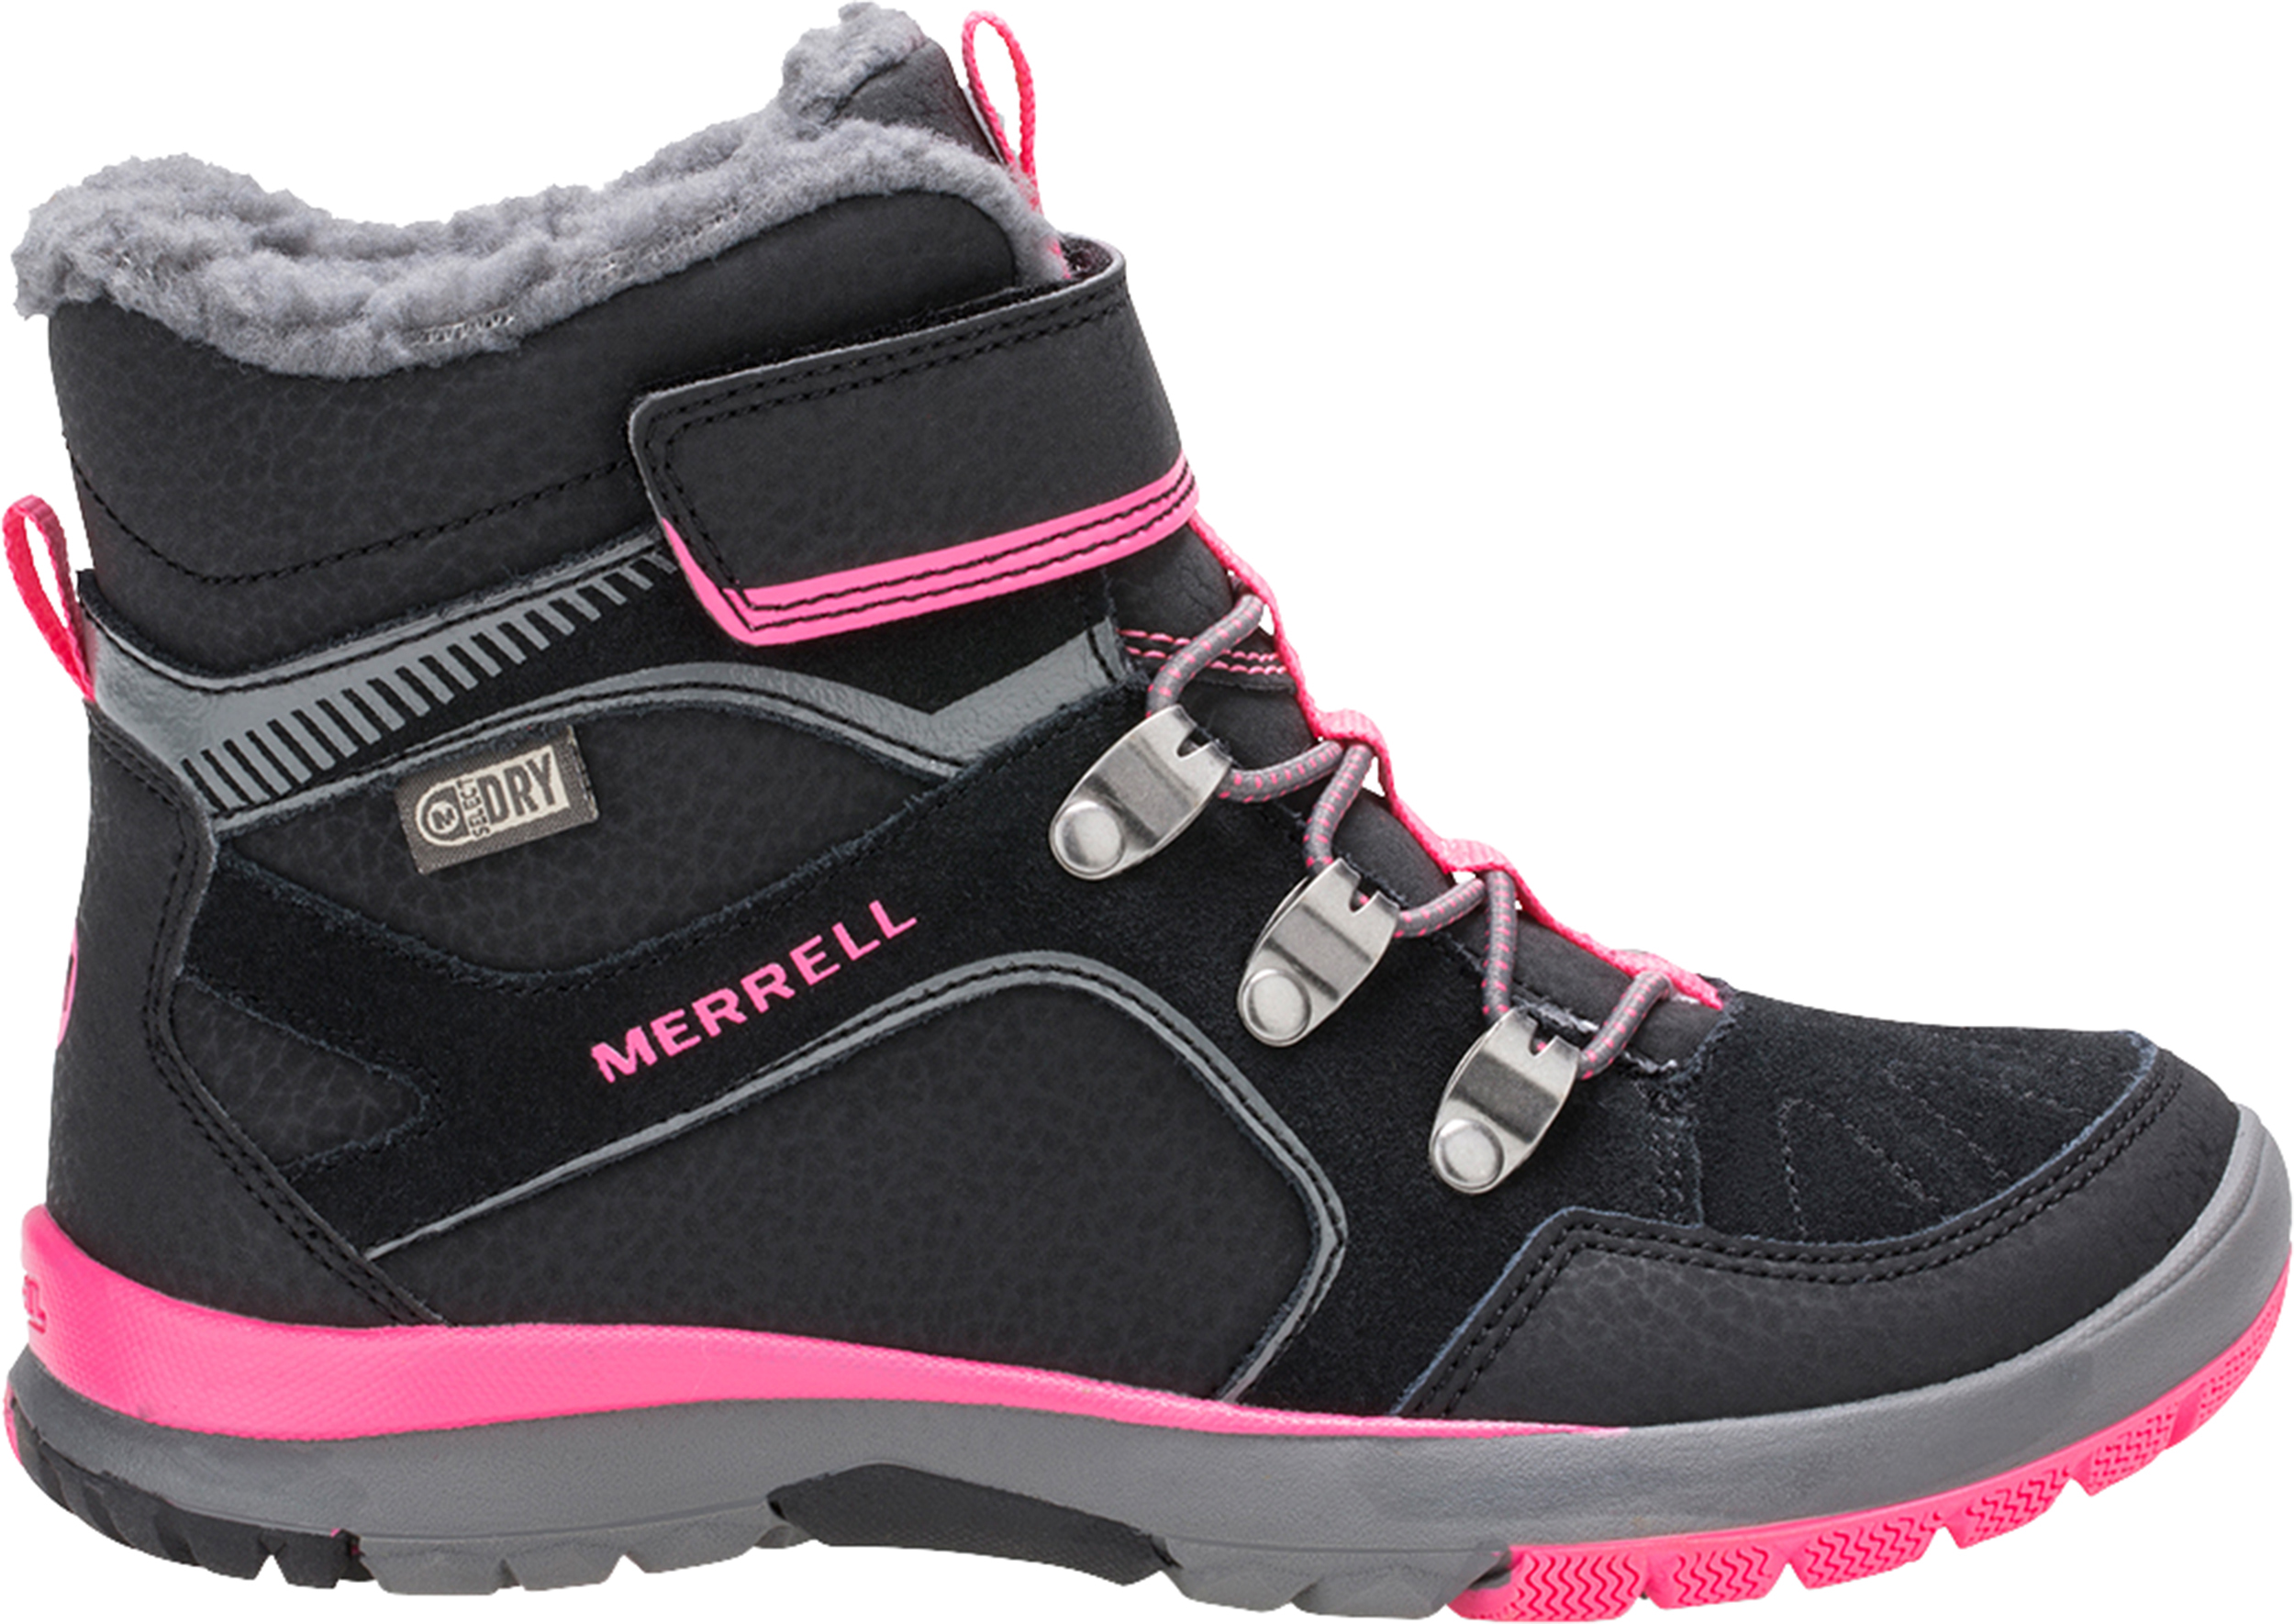 6eacce9c56 Merrell Moab FST Polar Mid A/C Waterproof Insulated Shoes - Children ...